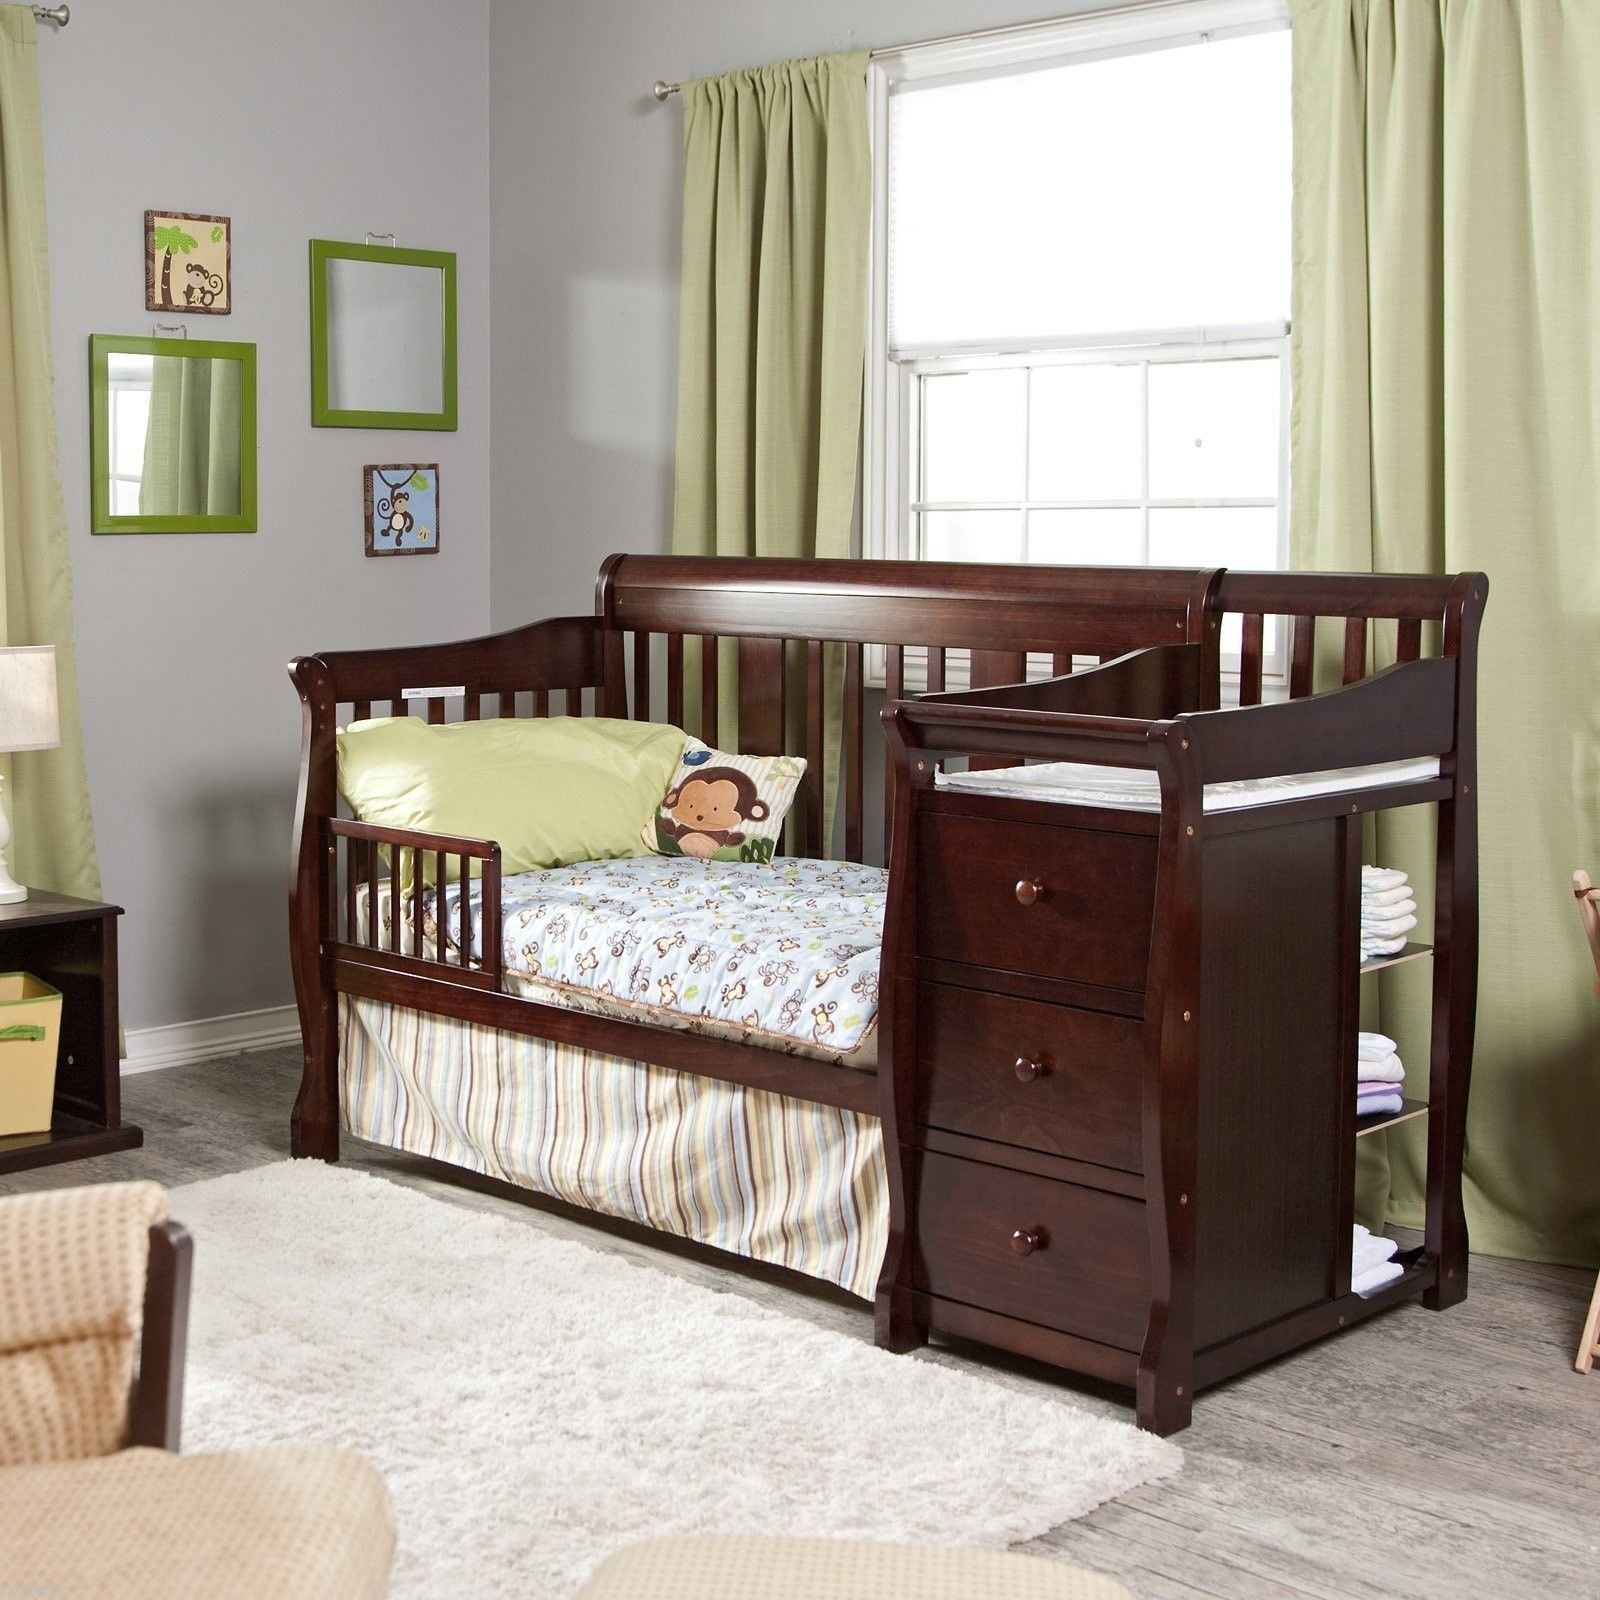 4 in 1 Side Convertible Crib Changer Nursery Furniture Baby Bed ...